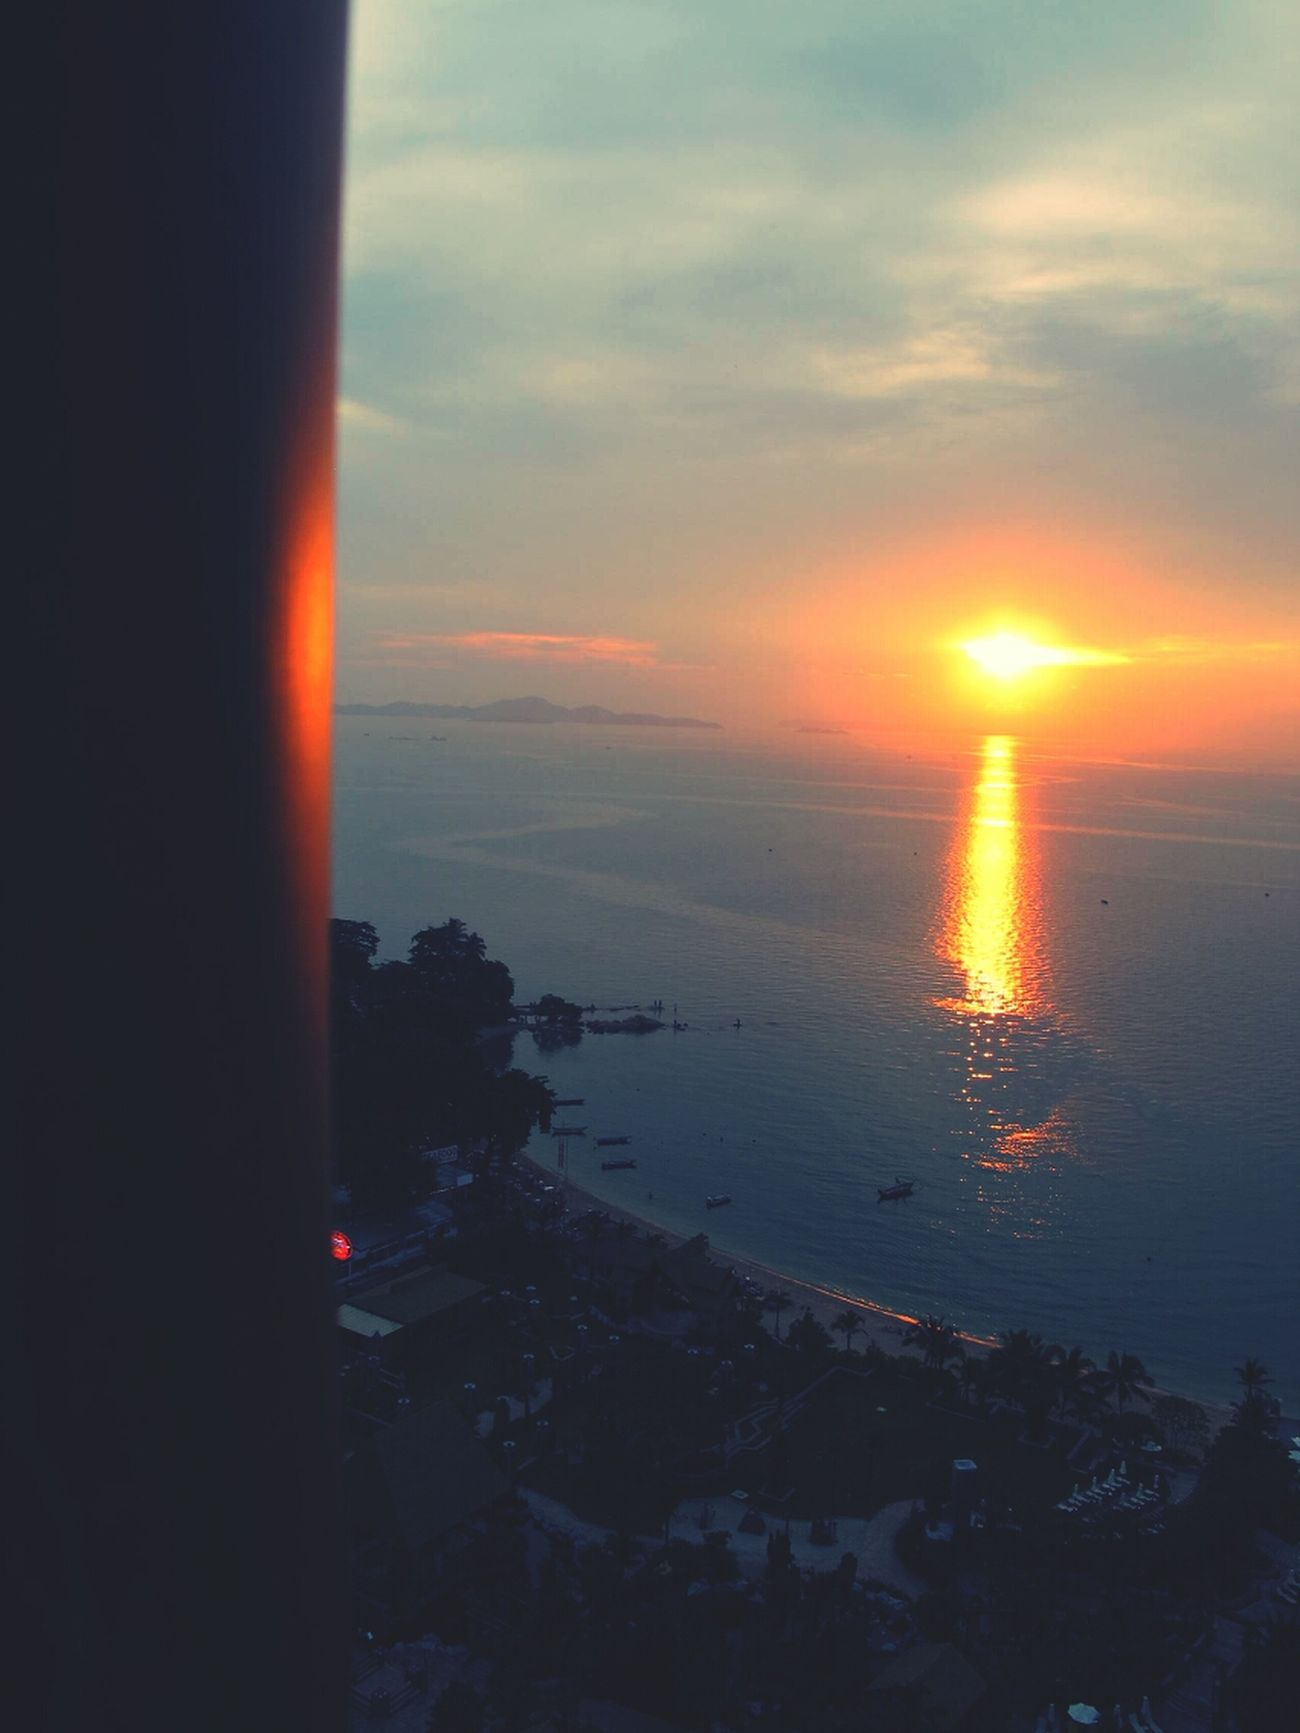 Tailand Pattaya Hotelroomview Sunset